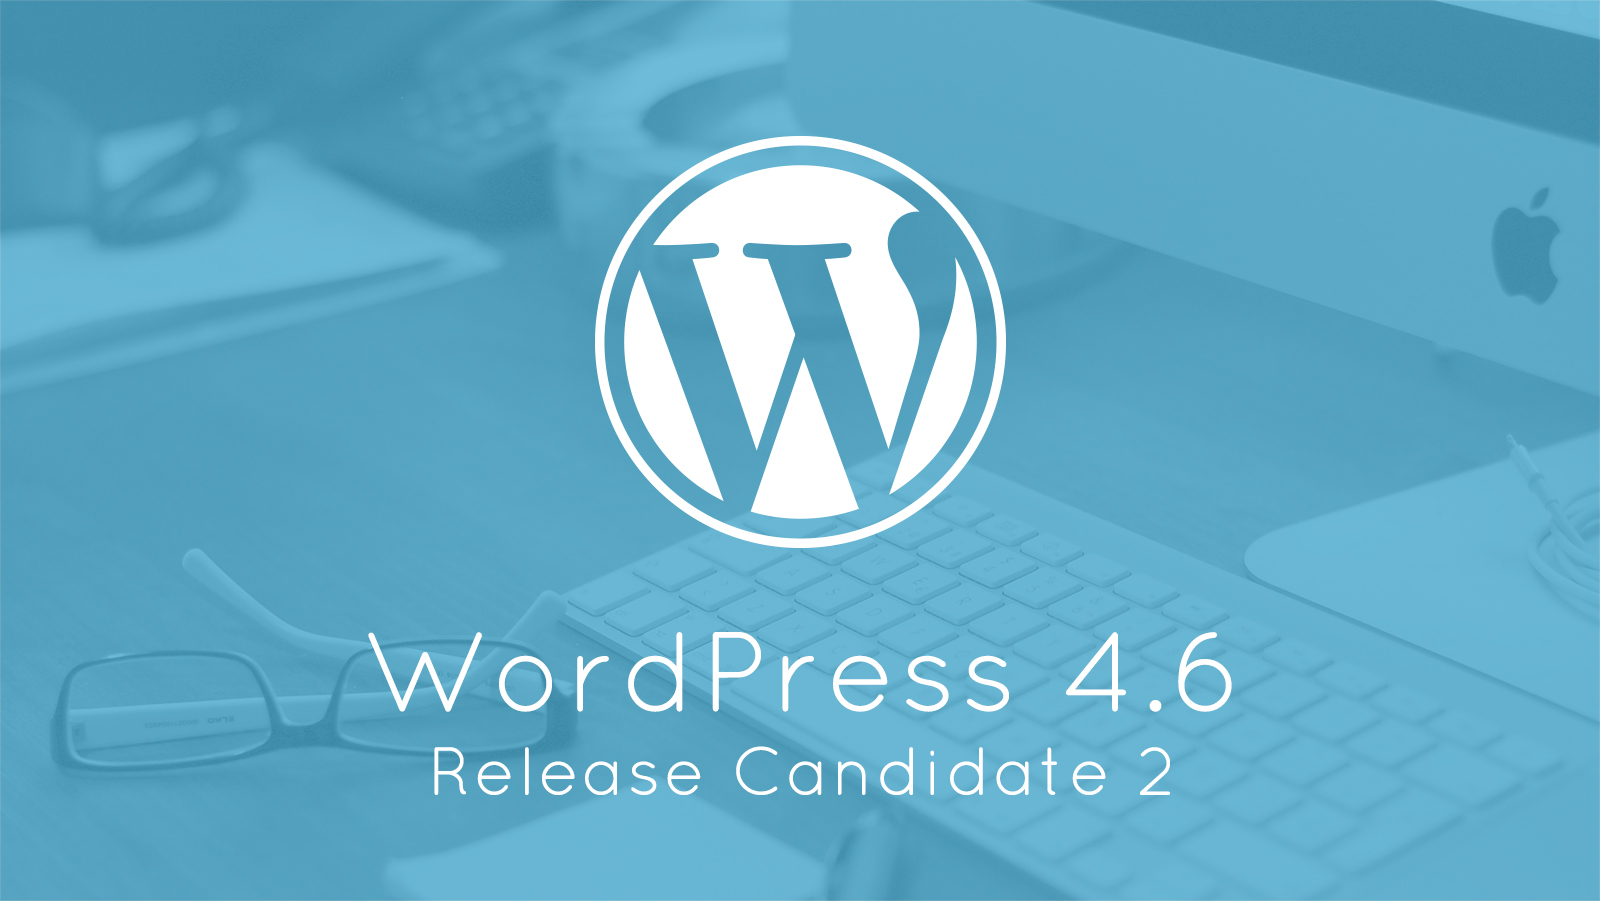 WordPress 4.6 Release Candidate 2 is Now Available for Download